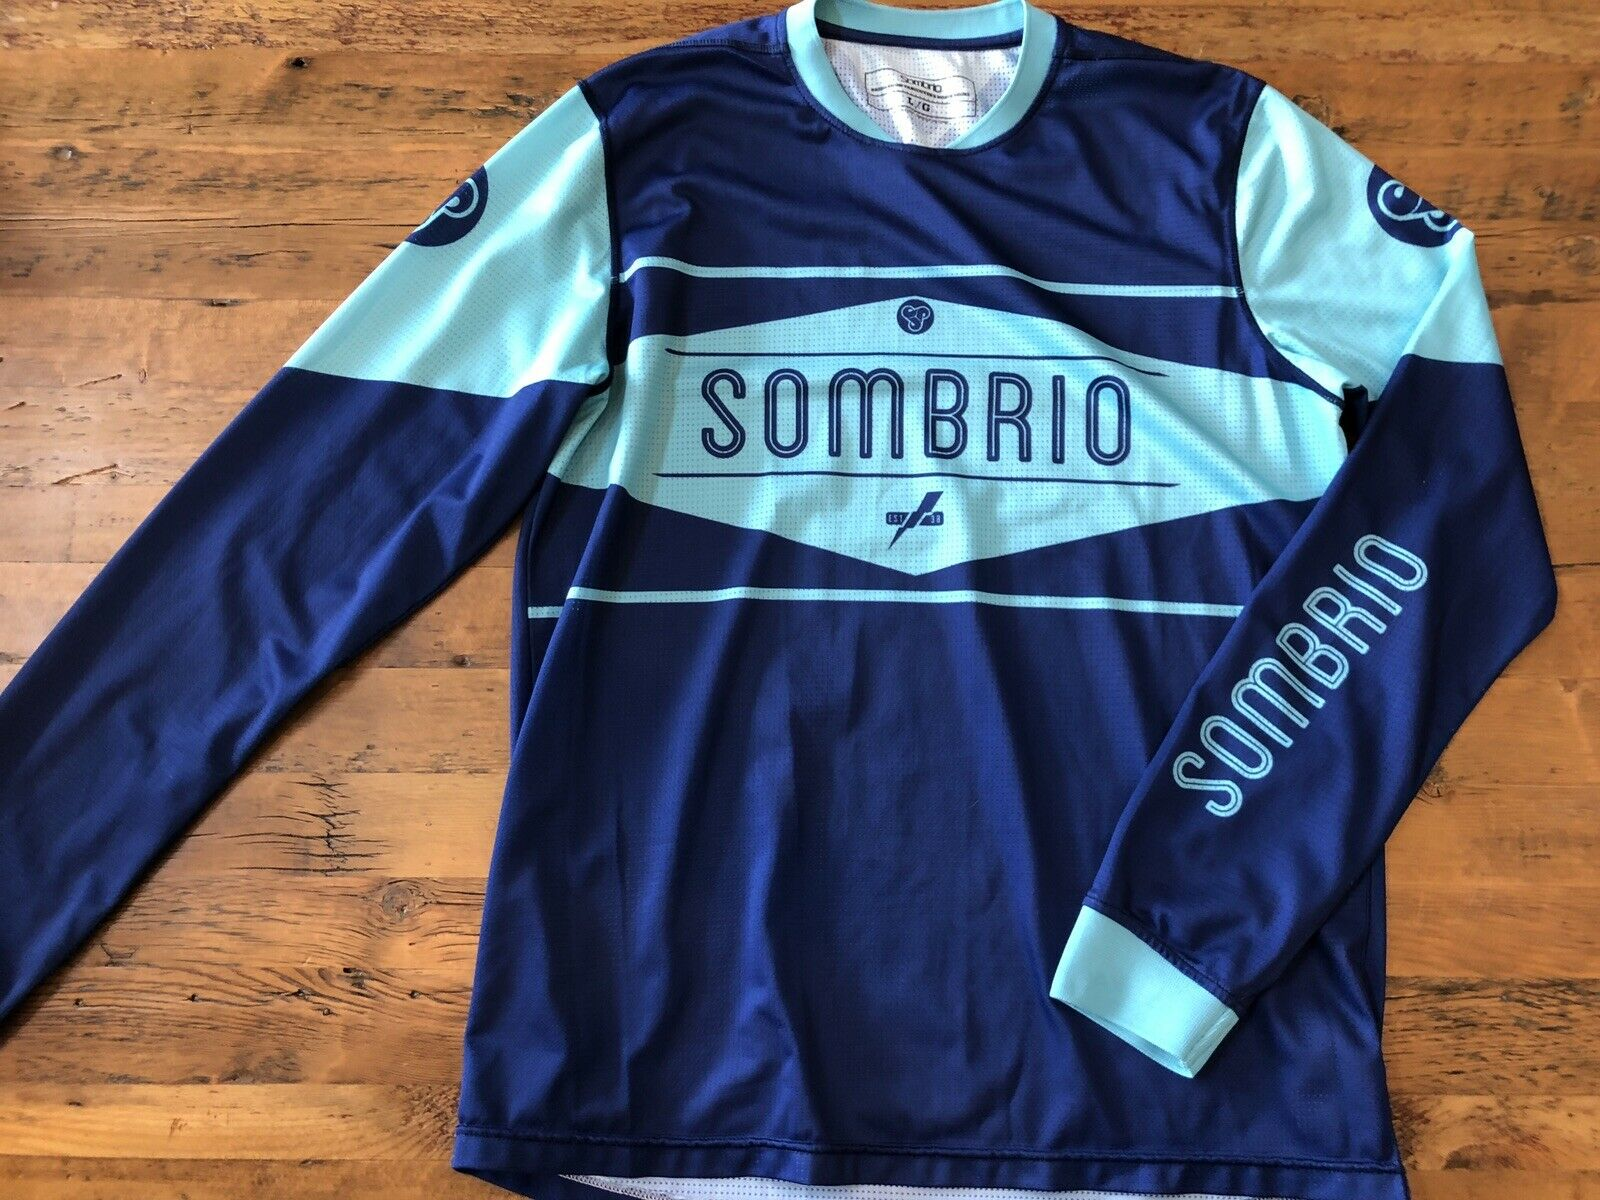 Sombrio Duster Cycling Bike Jersey Mens Large Long Sleeve bluee  on bluee Athletic  buy cheap new